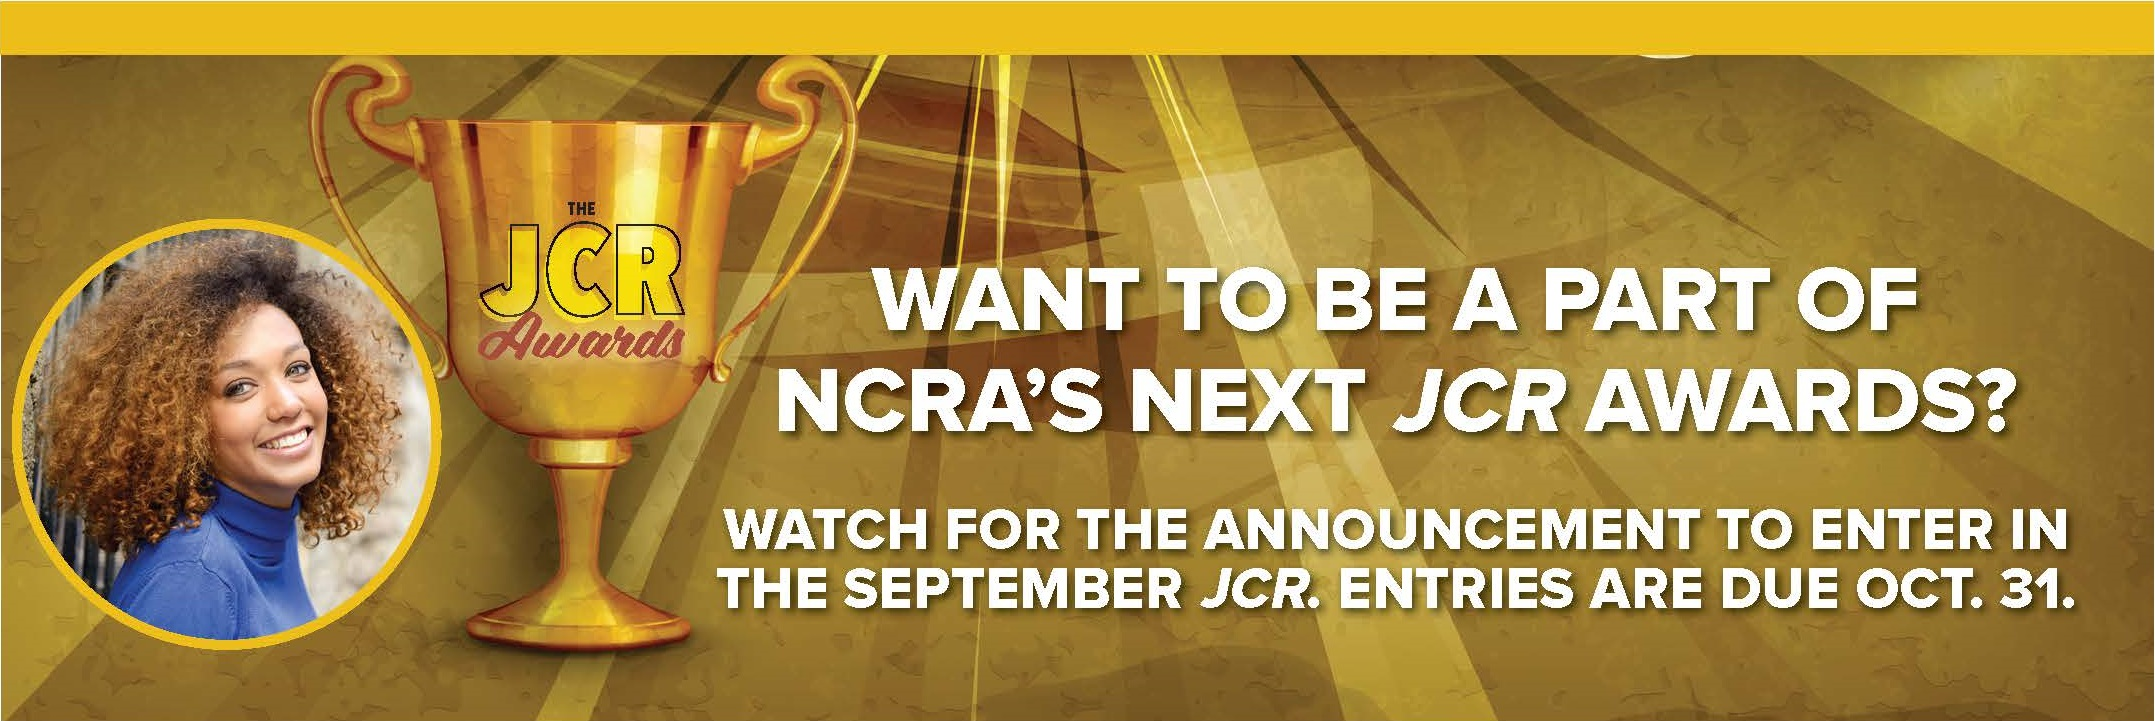 Next JCR Awards